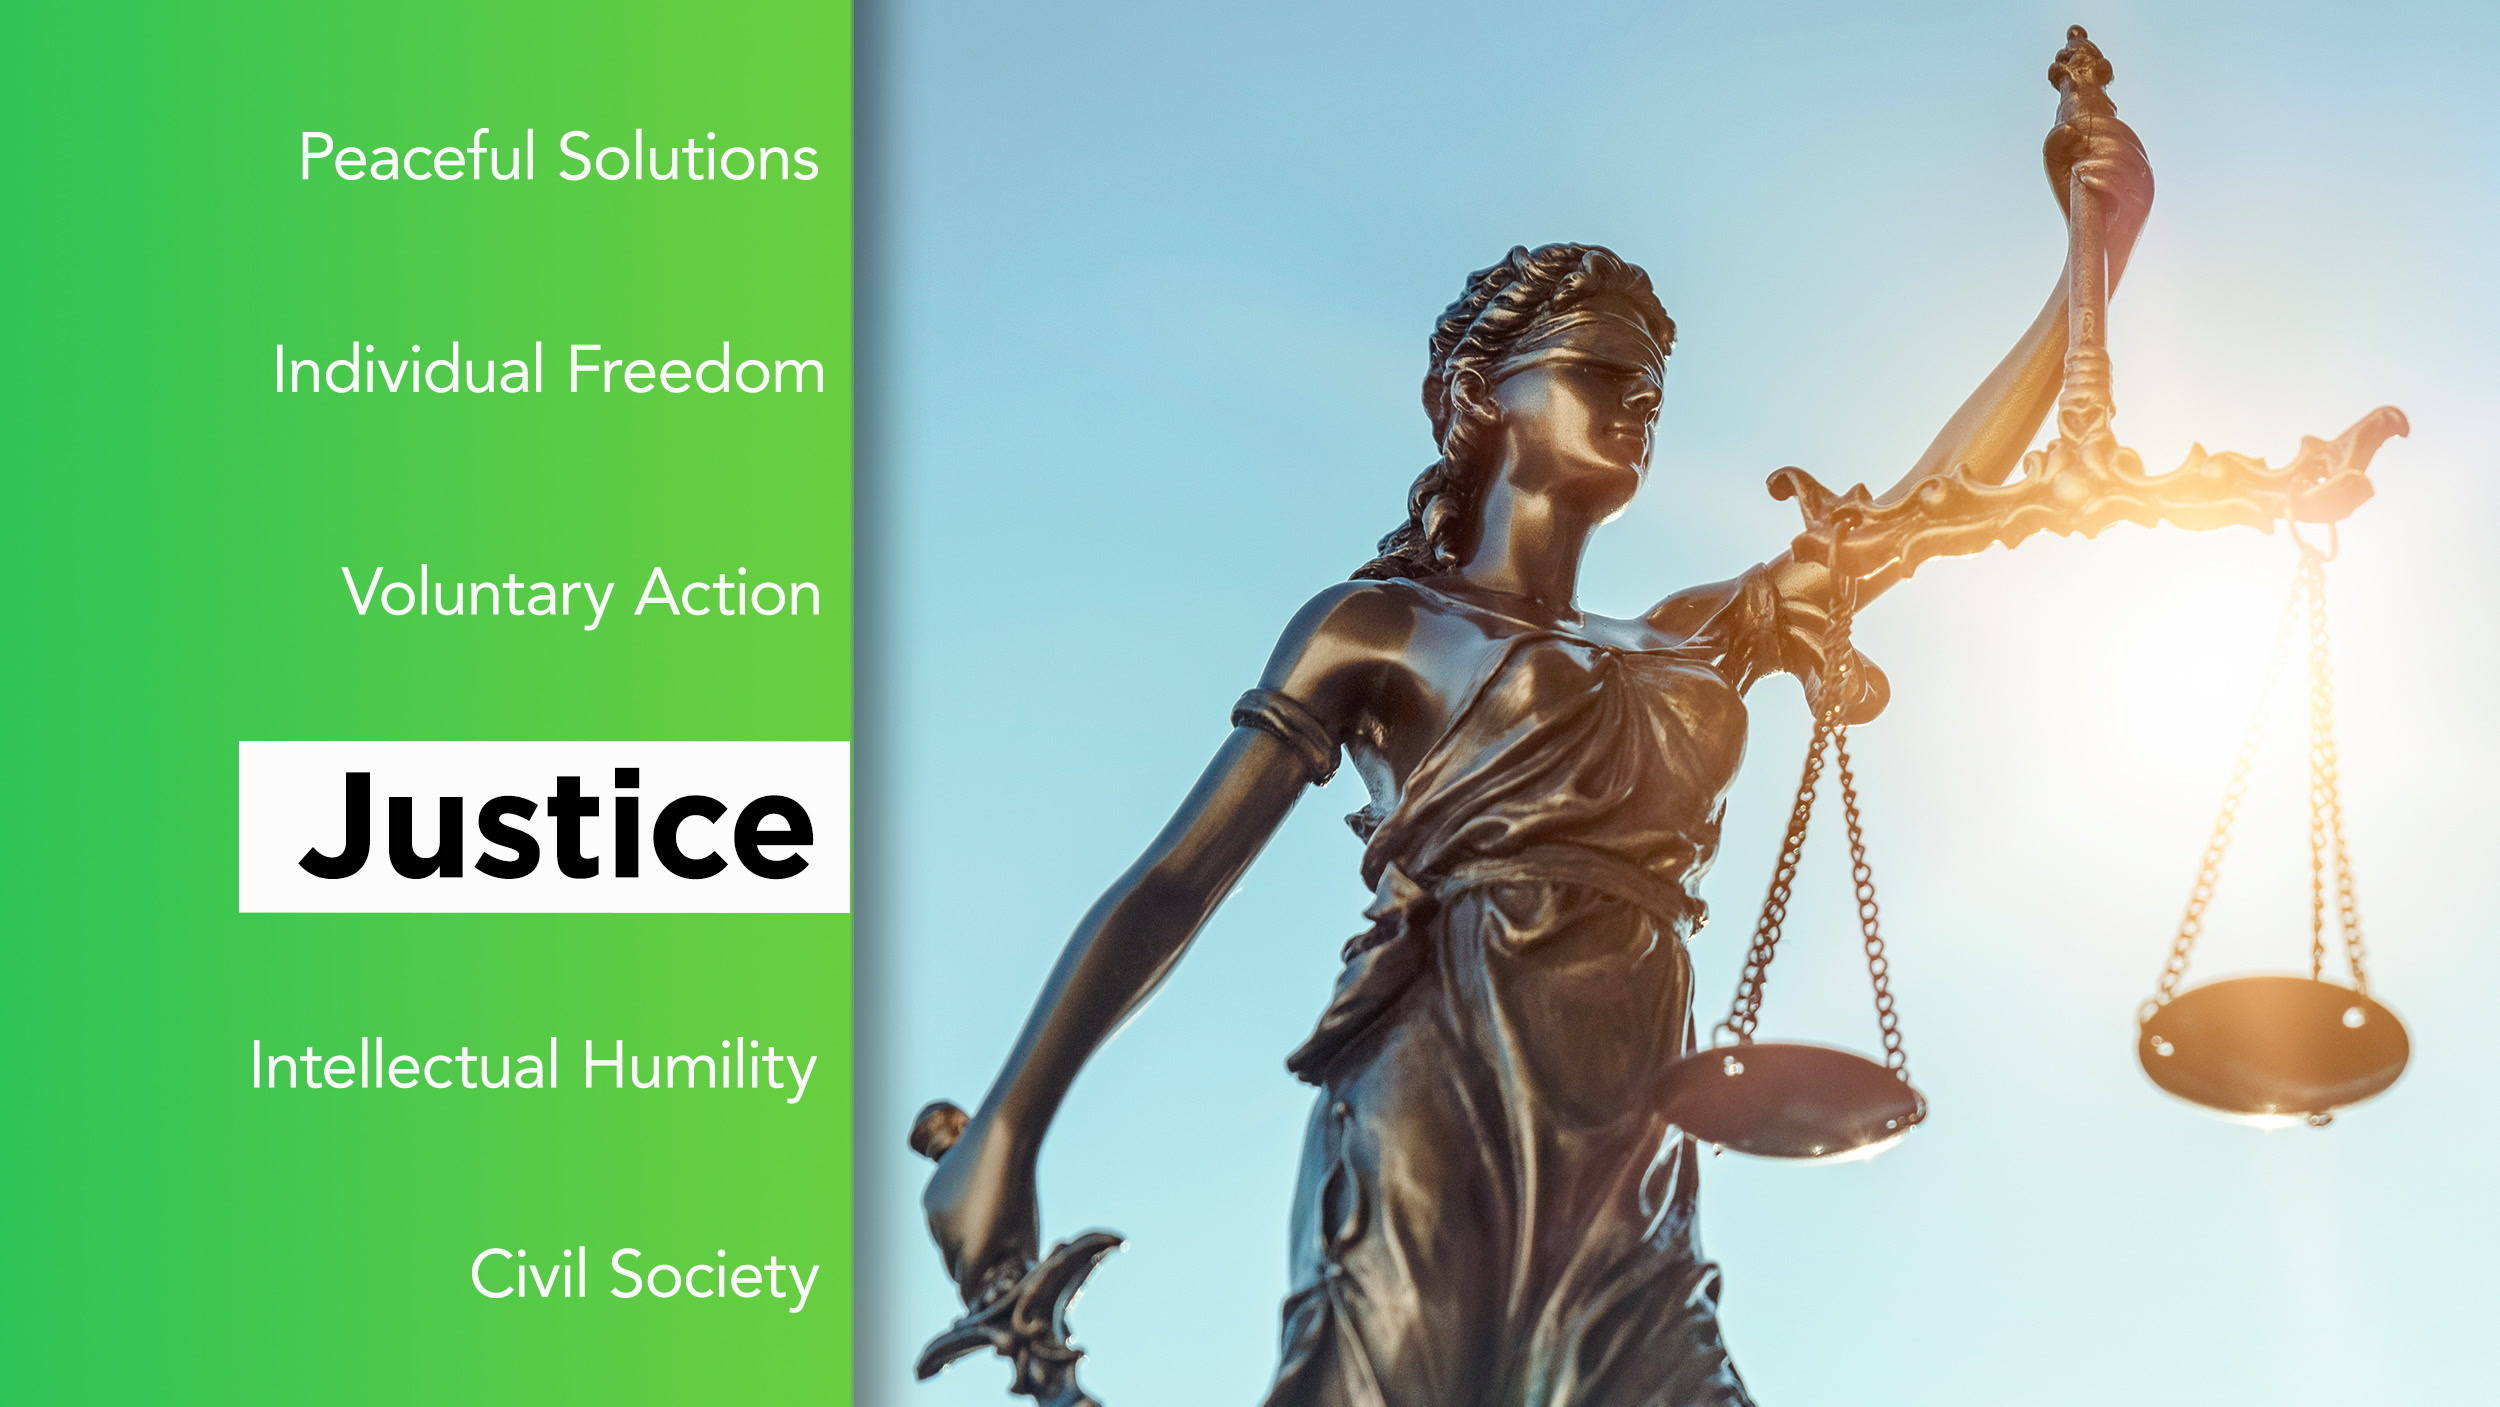 What elements make up our idea of justice?